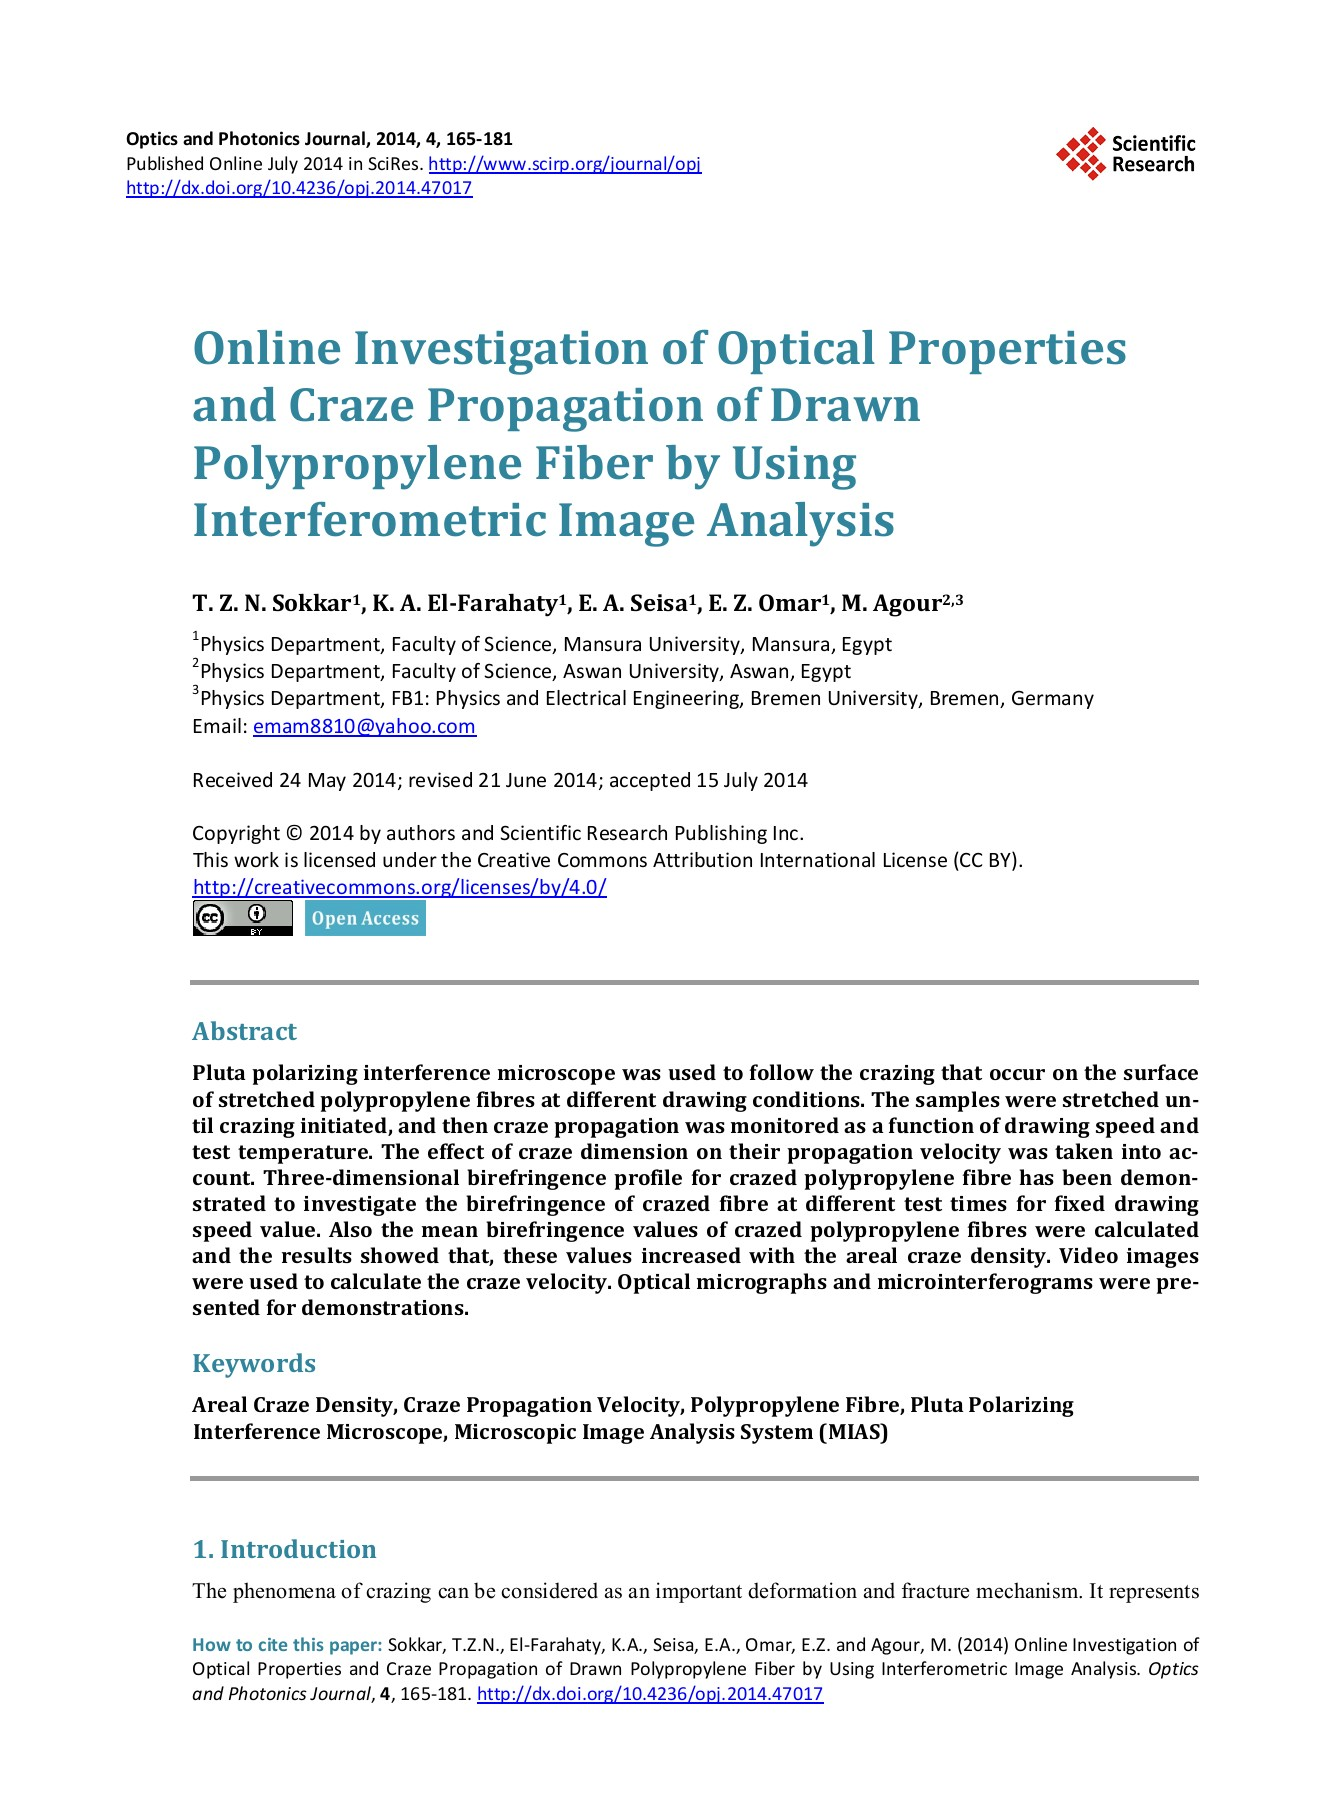 Online Investigation of Optical Properties and Craze     Pages 1